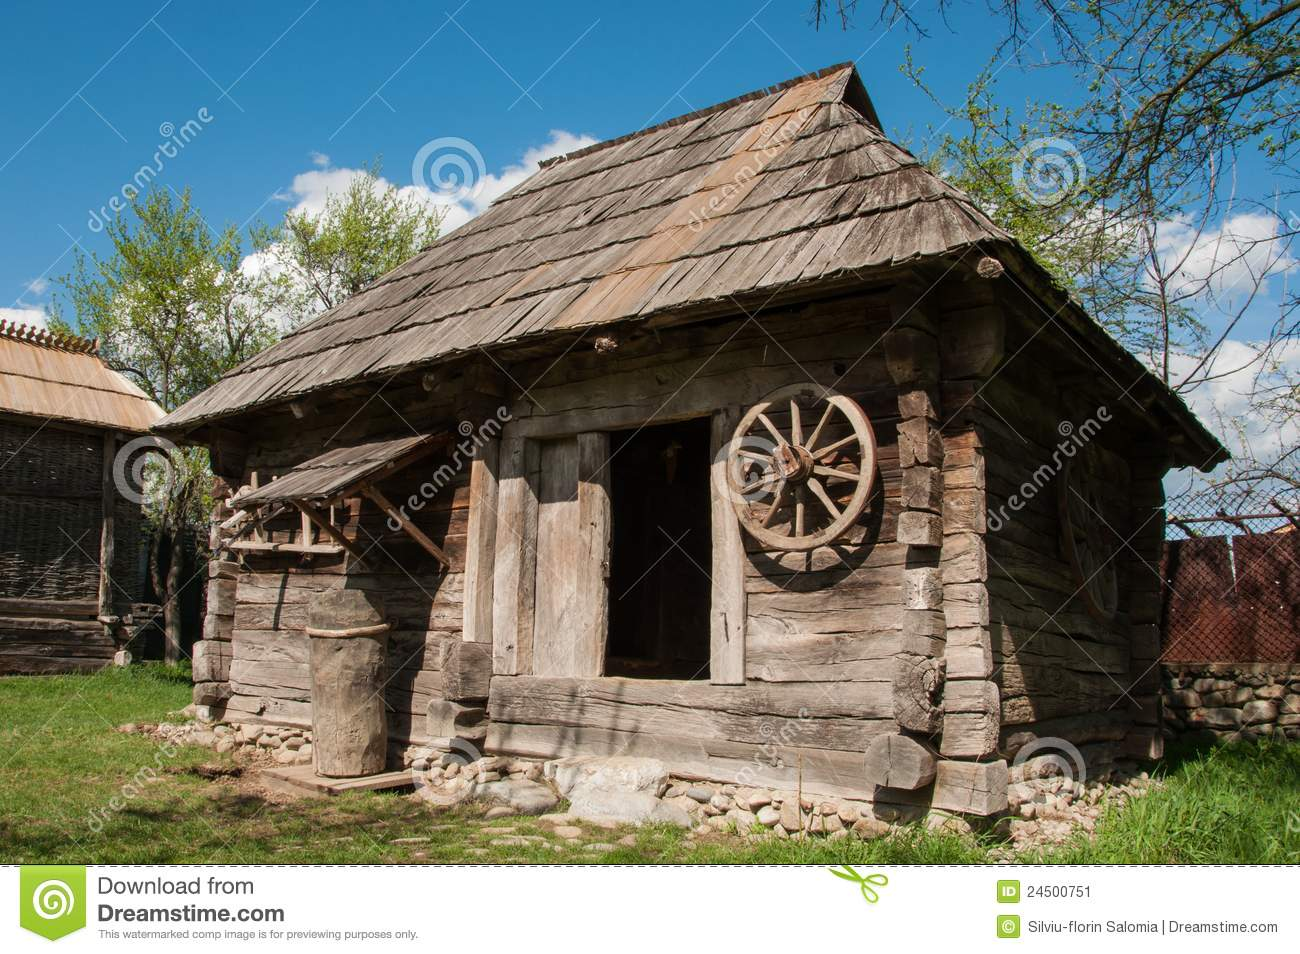 Old wooden house in rural romania stock image image of for Wood house images